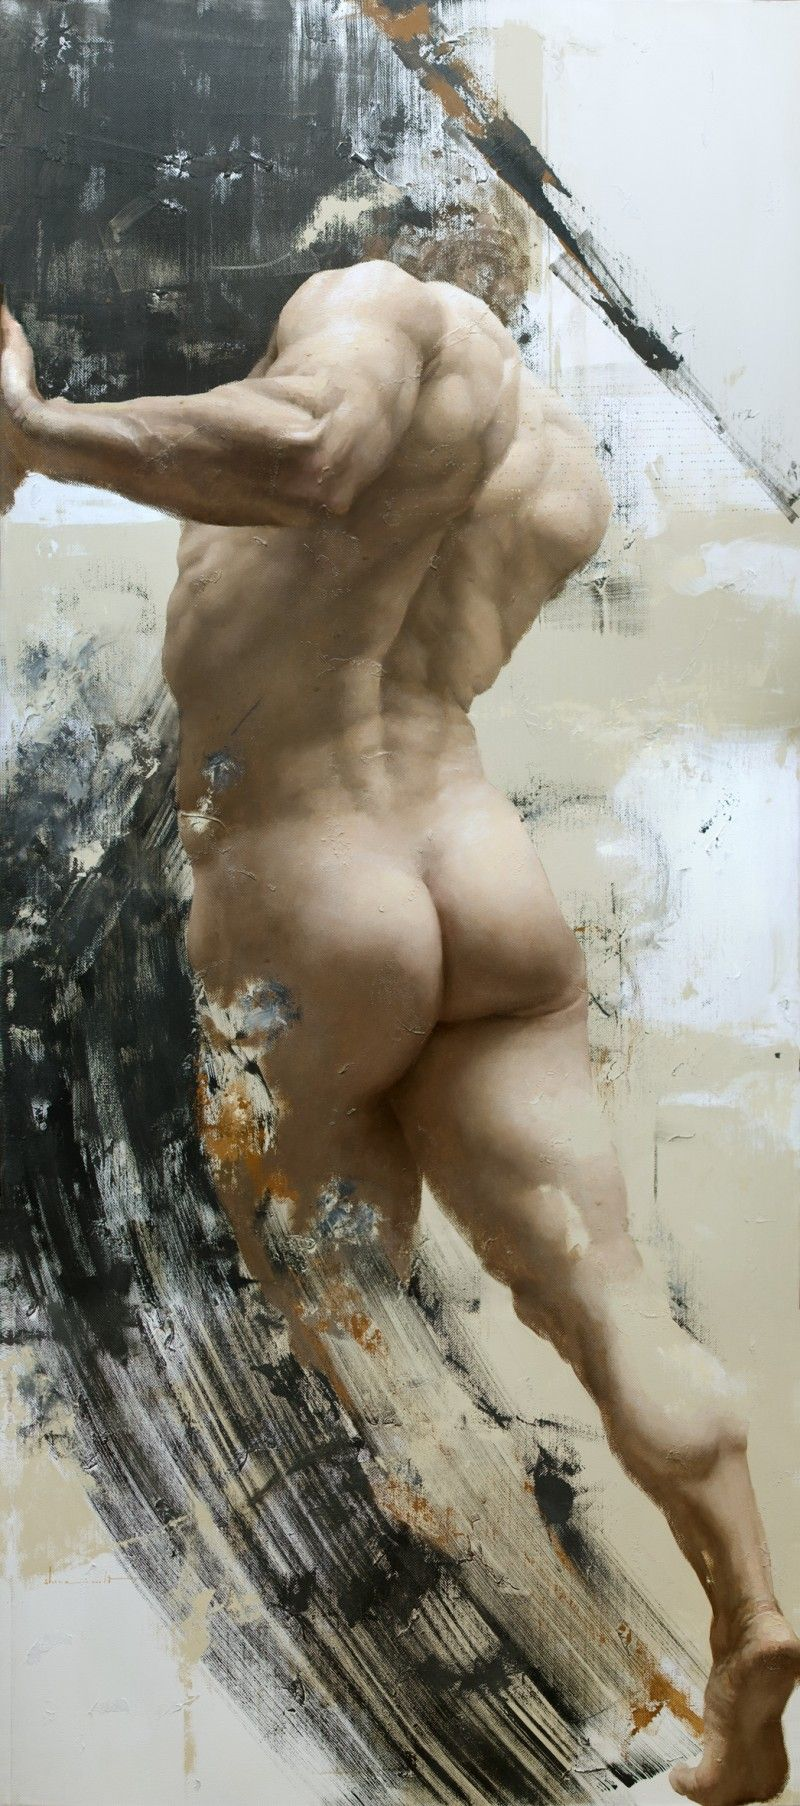 Shane Wolf Thrust Oil on Canvas 39 x 88 inches | P A I N T ...